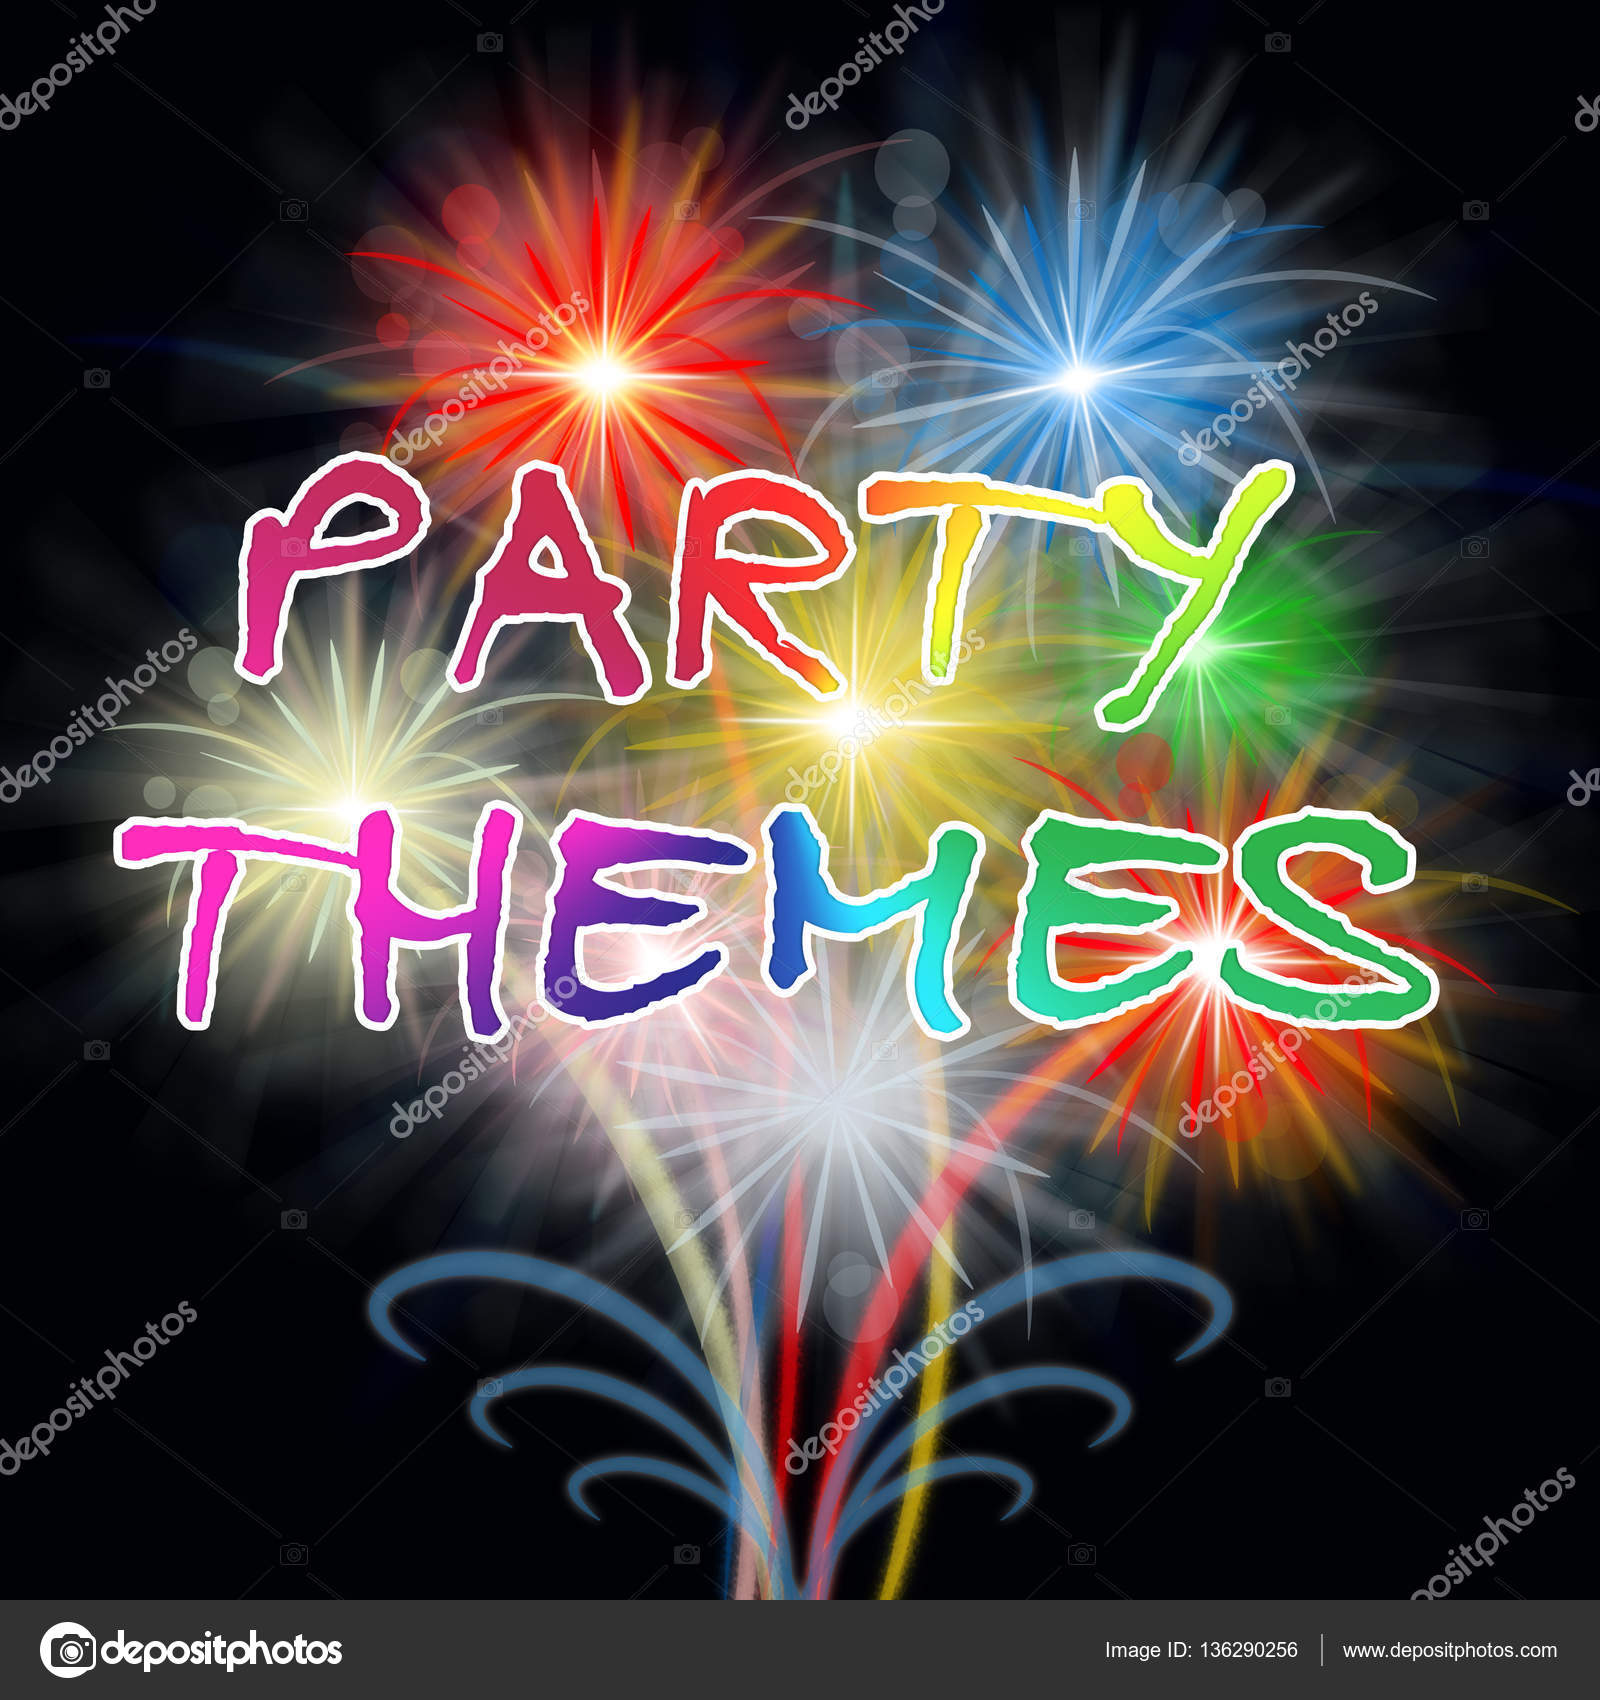 party themes indicates celebration ideas and festivity stock photo